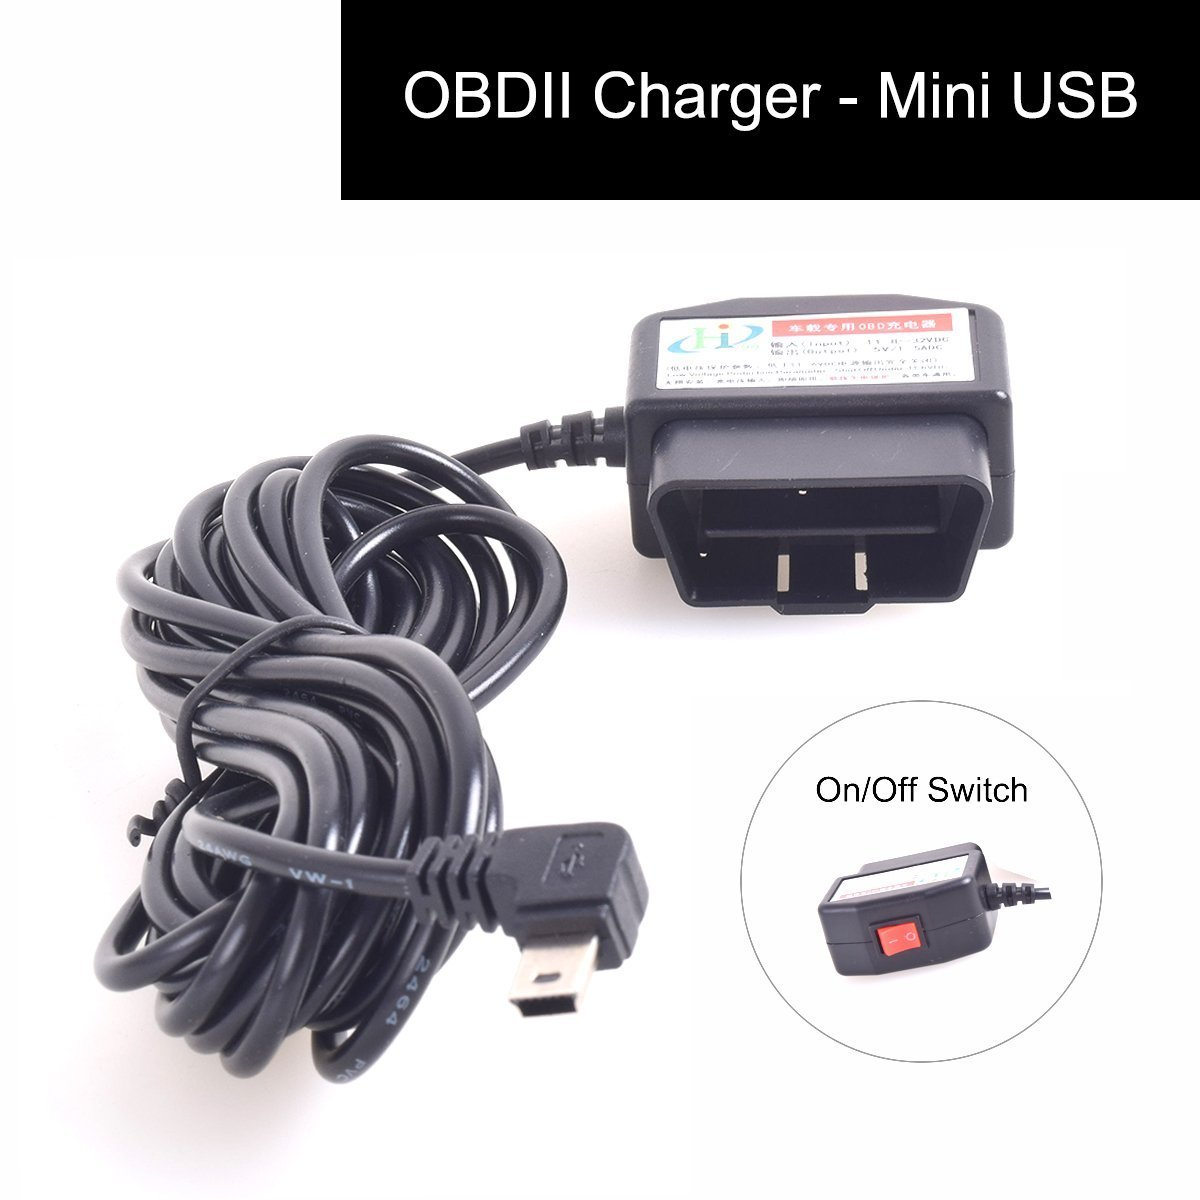 Auto OBD2 Charging Cable Mini USB Power Adapter with Switch Button - 16Pin  OBD2 Connector Direct Link Car Charger for Gps DVR Dash Cam E-dog Phone -